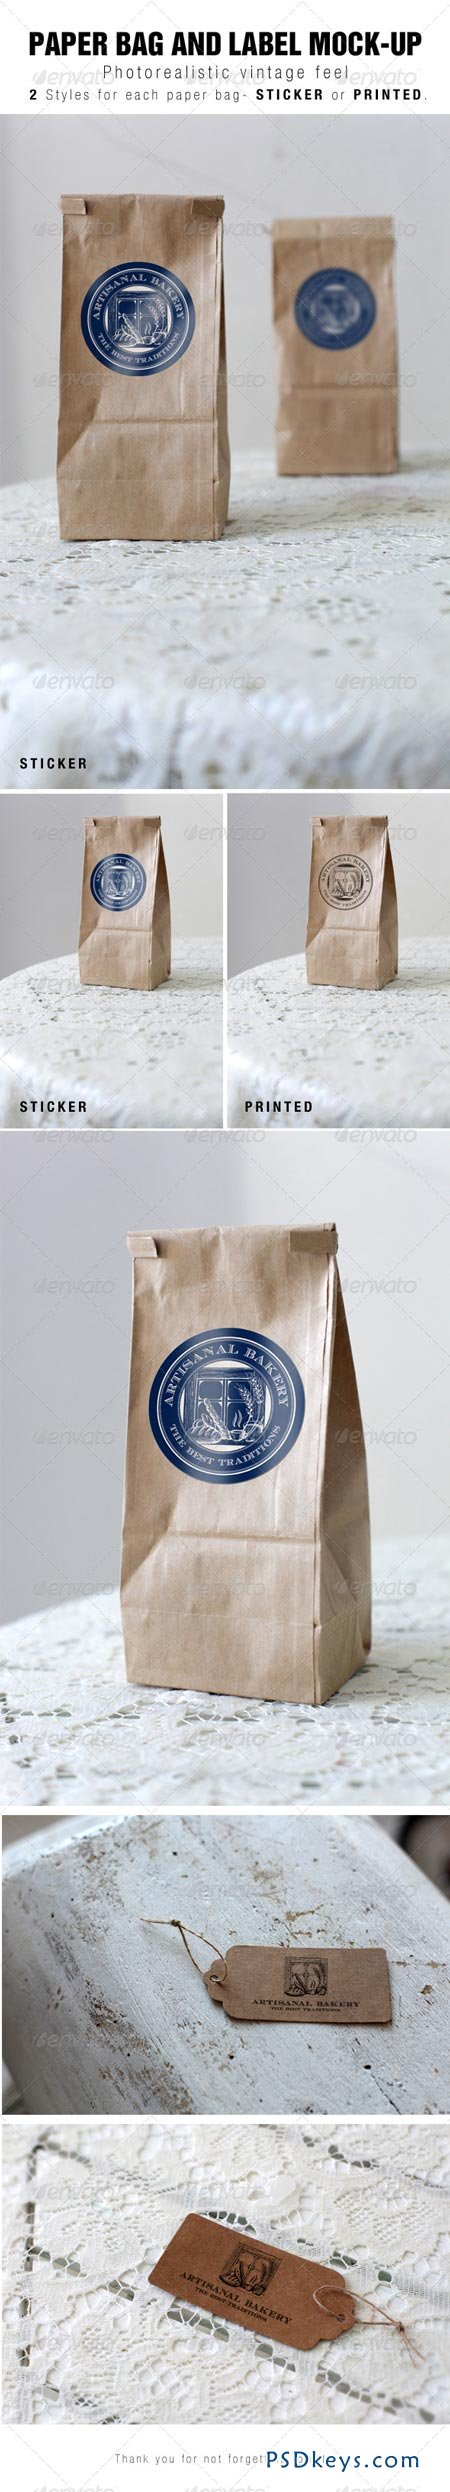 Paper Bag and Label Mock-up 6830128